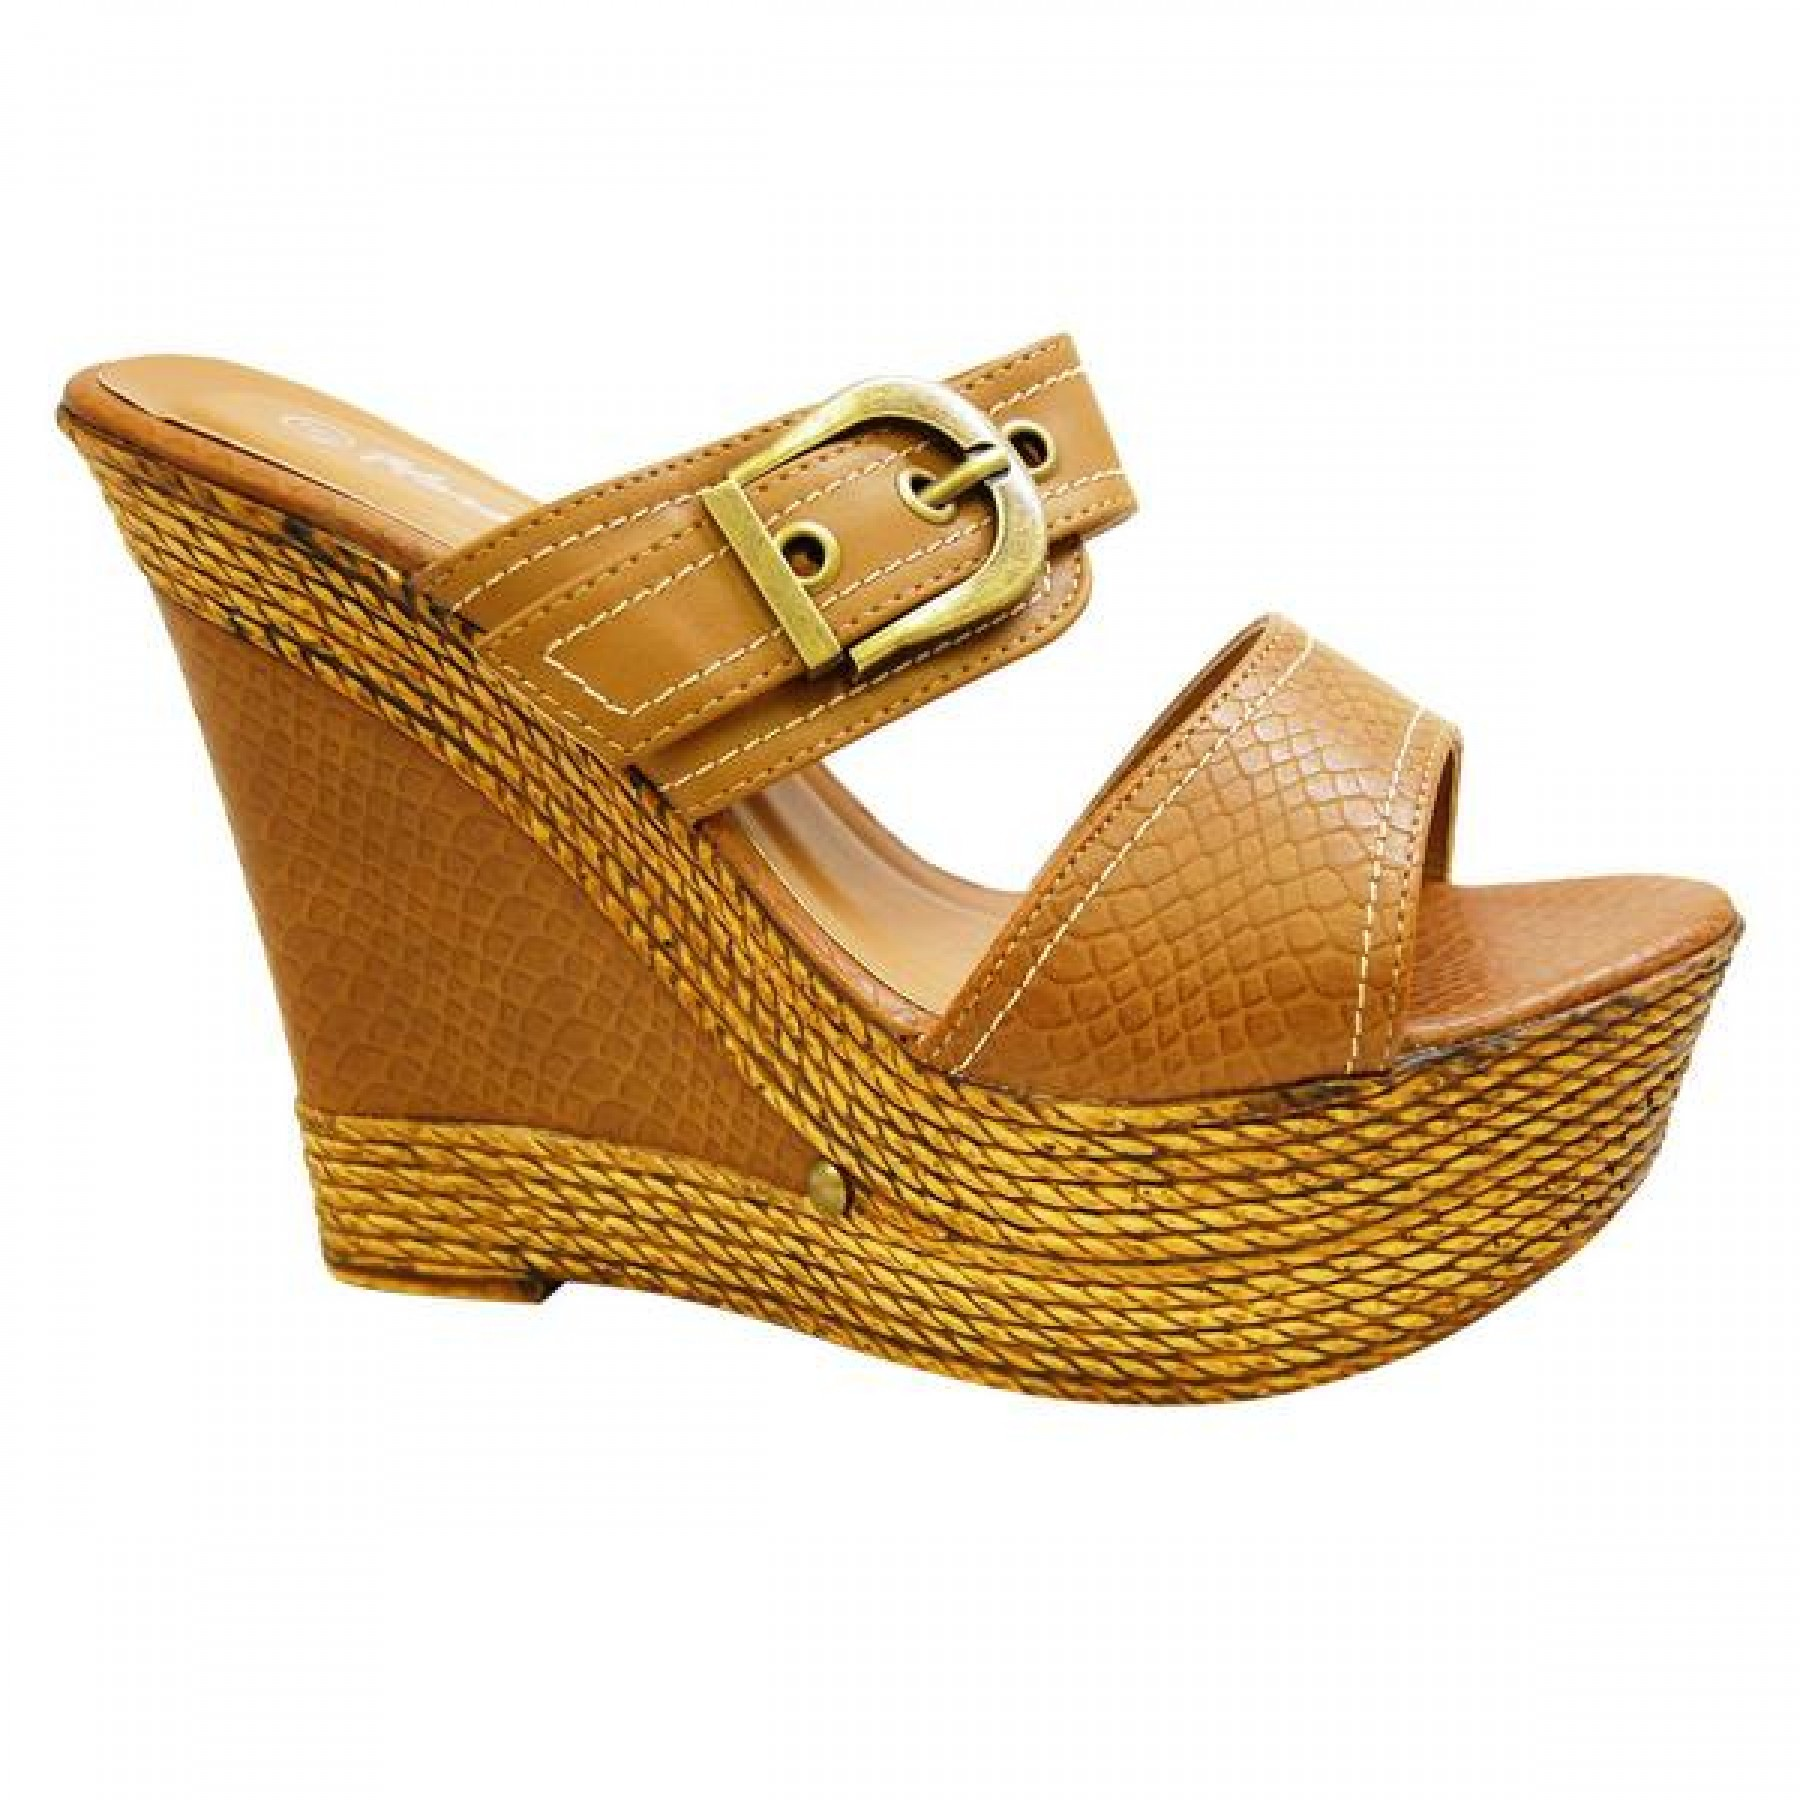 Women's Cognac Manmade Dovveerr 5-inch Wedge Sandal with Faux Snakescale Pattern